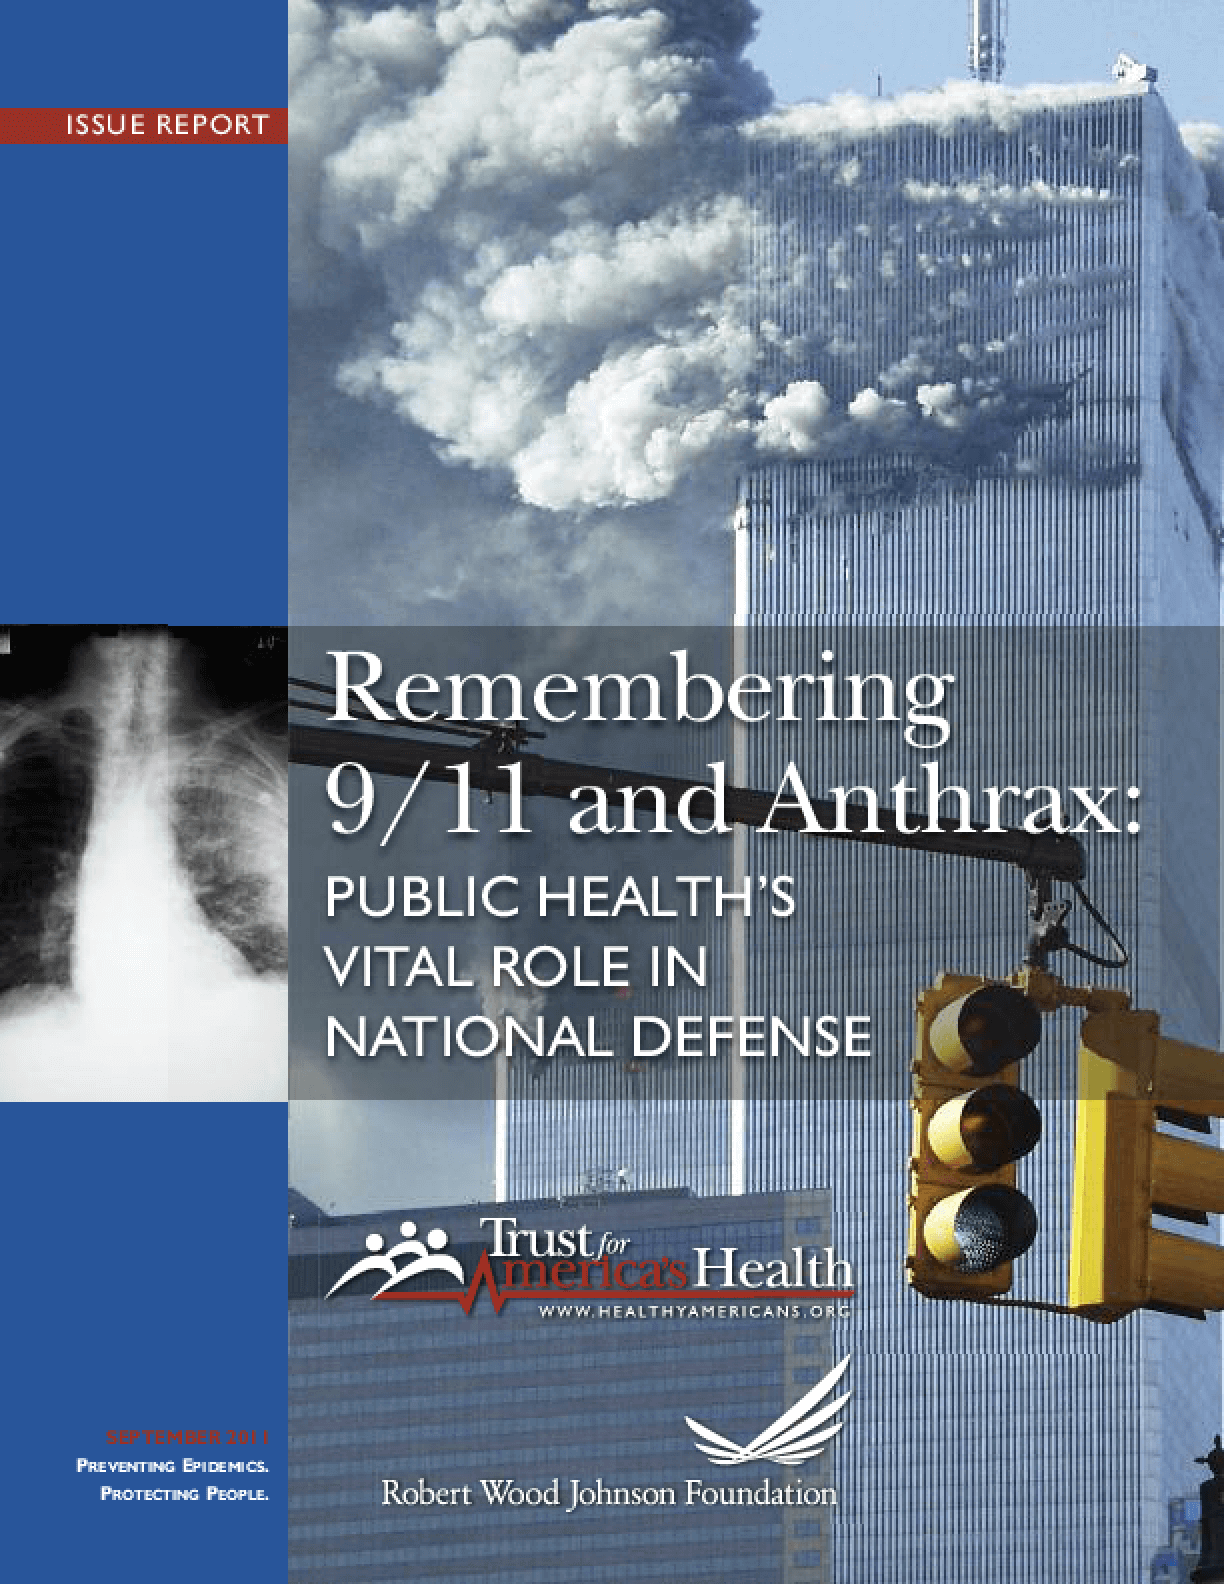 Remembering 9/11 and Anthrax: Public Health's Vital Role in National Defense